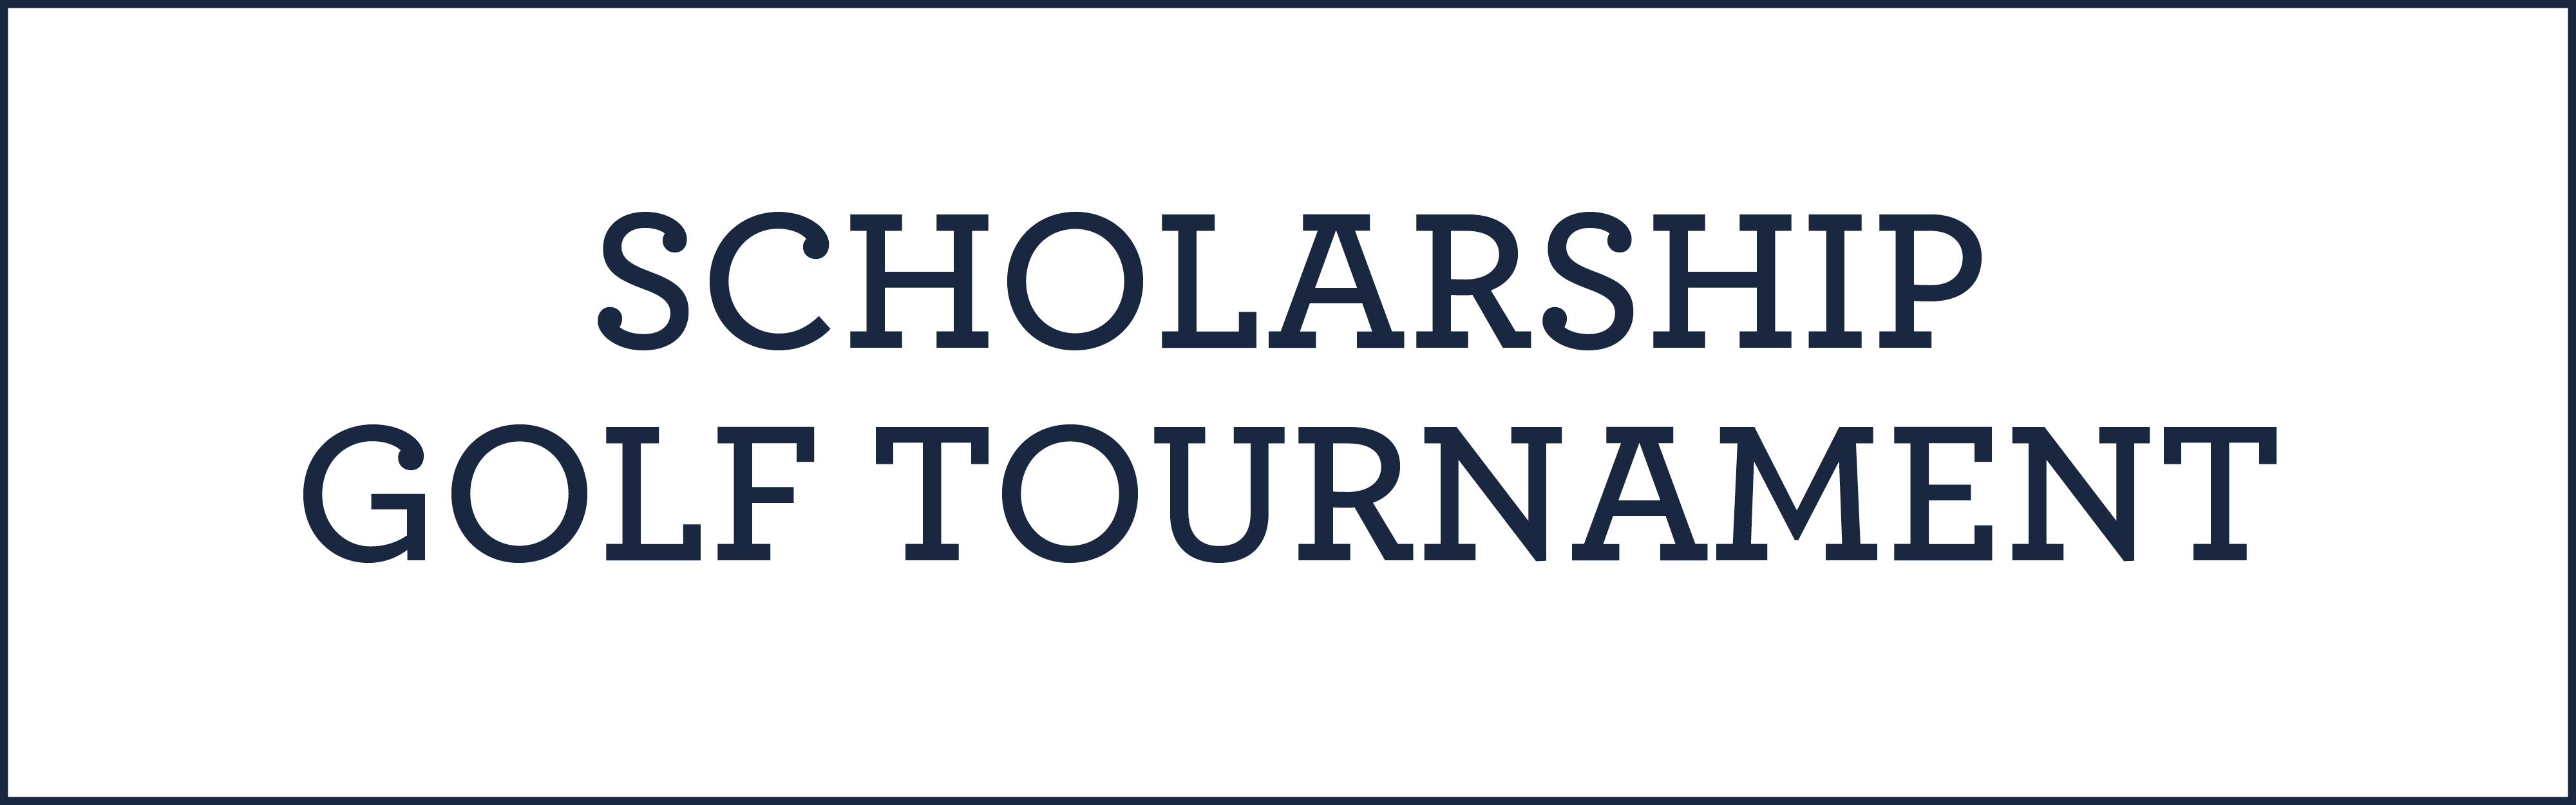 scholarship golf tournament event information